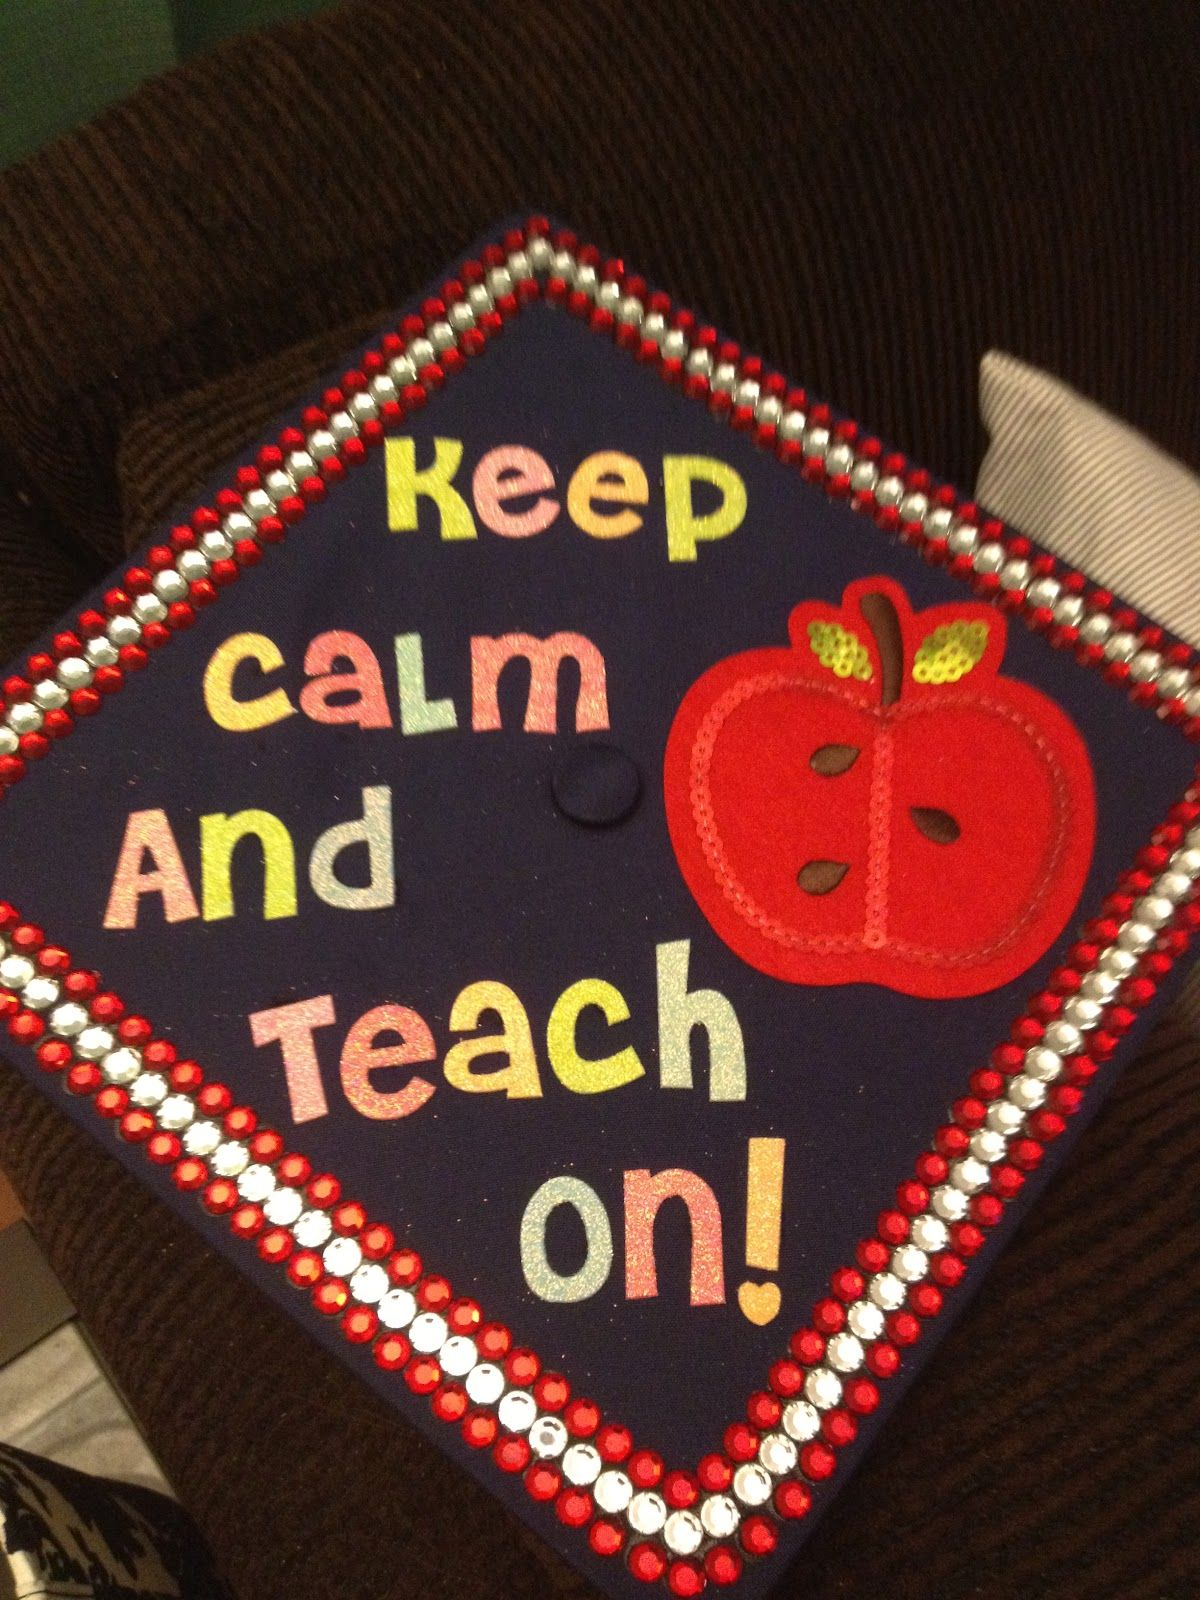 Decorating graduation cap ideas for teachers - Graduation Cap Decoration Ideas Teacher Guess Who S Gonna Do This On Her Cap